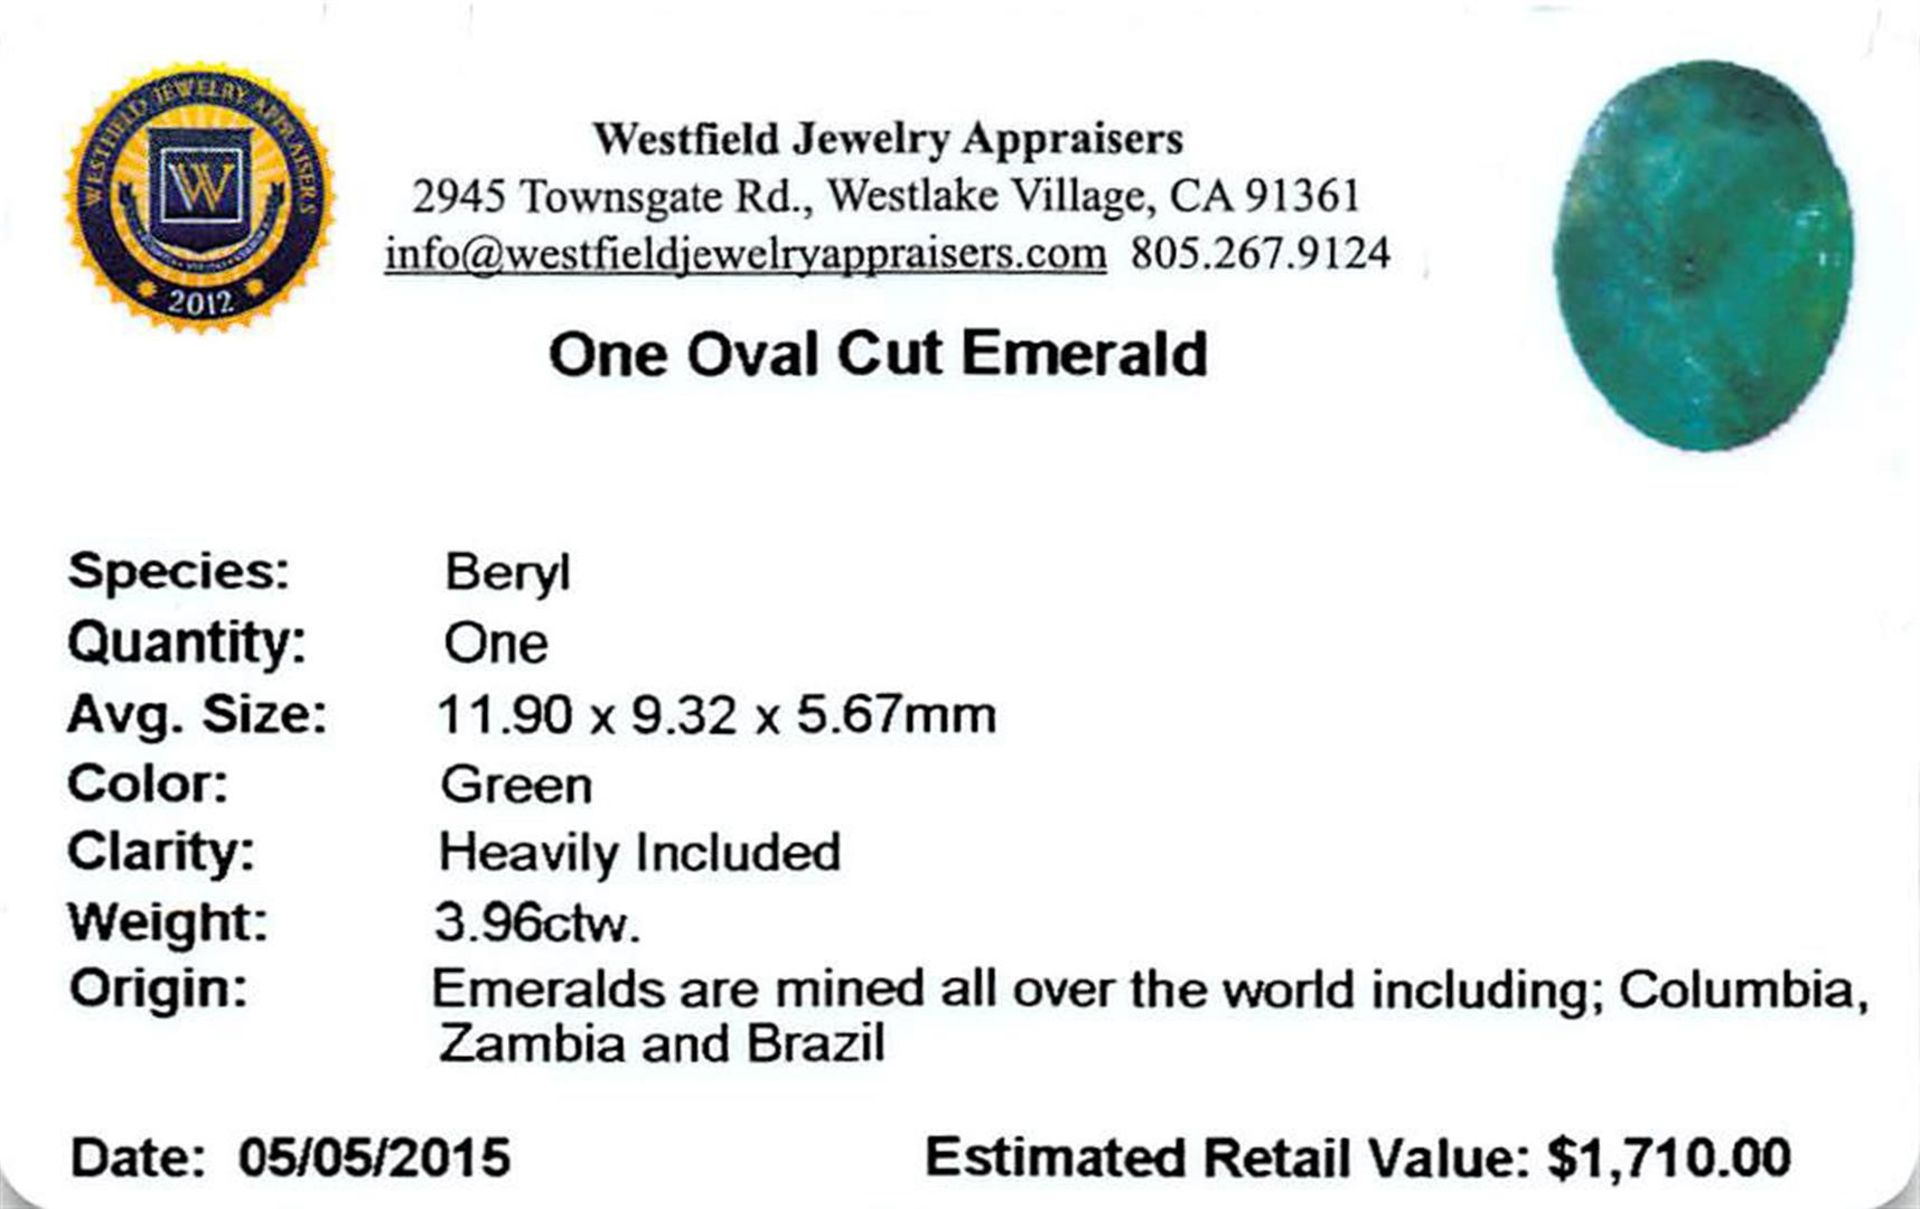 3.96 ctw Oval Emerald Parcel - Image 2 of 2